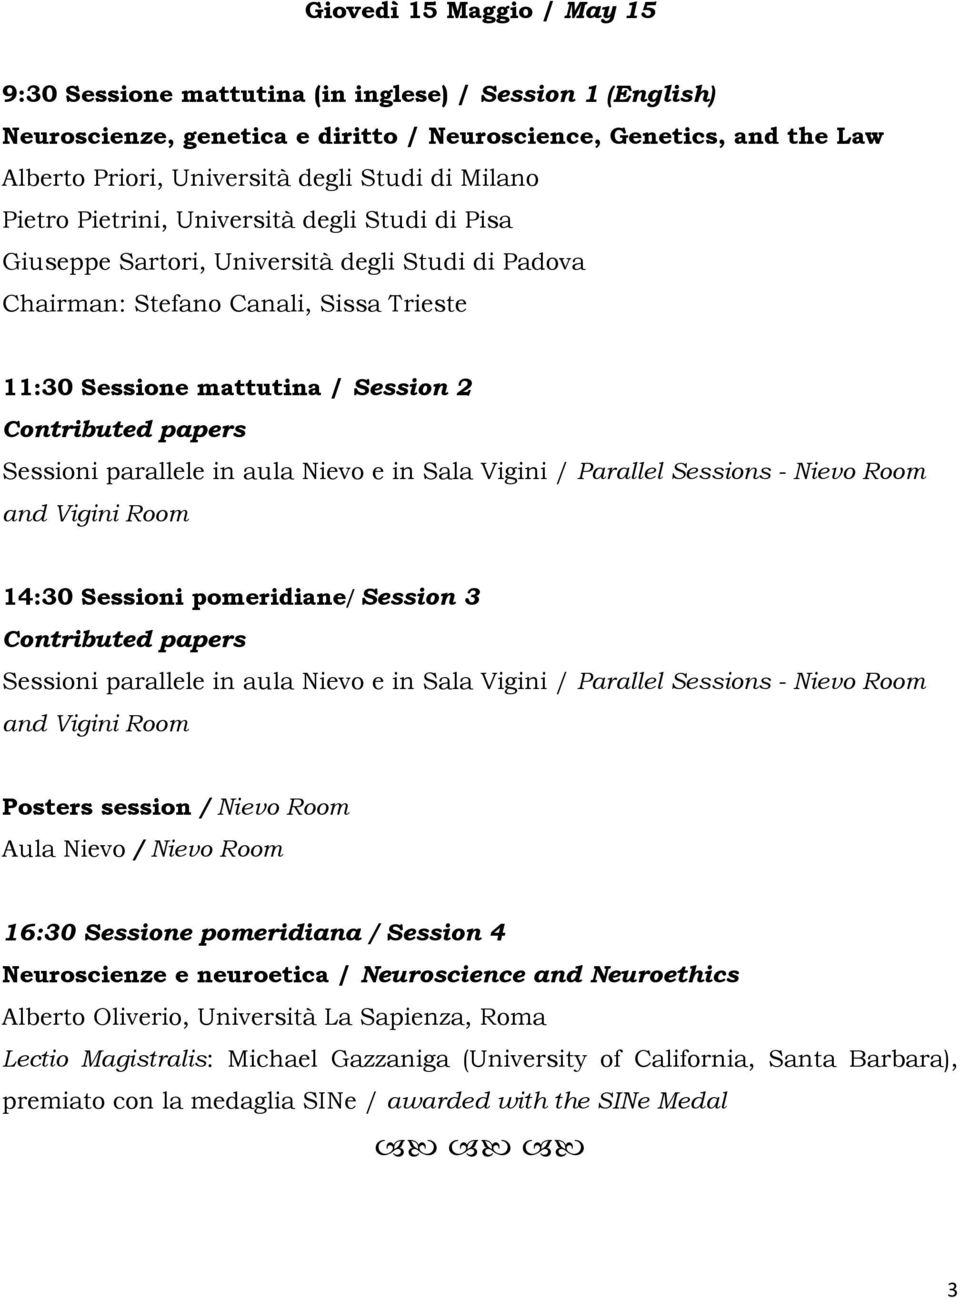 2 14:30 Sessioni pomeridiane/ Session 3 Posters session / Nievo Room Aula Nievo / Nievo Room 16:30 Sessione pomeridiana / Session 4 Neuroscienze e neuroetica / Neuroscience and Neuroethics